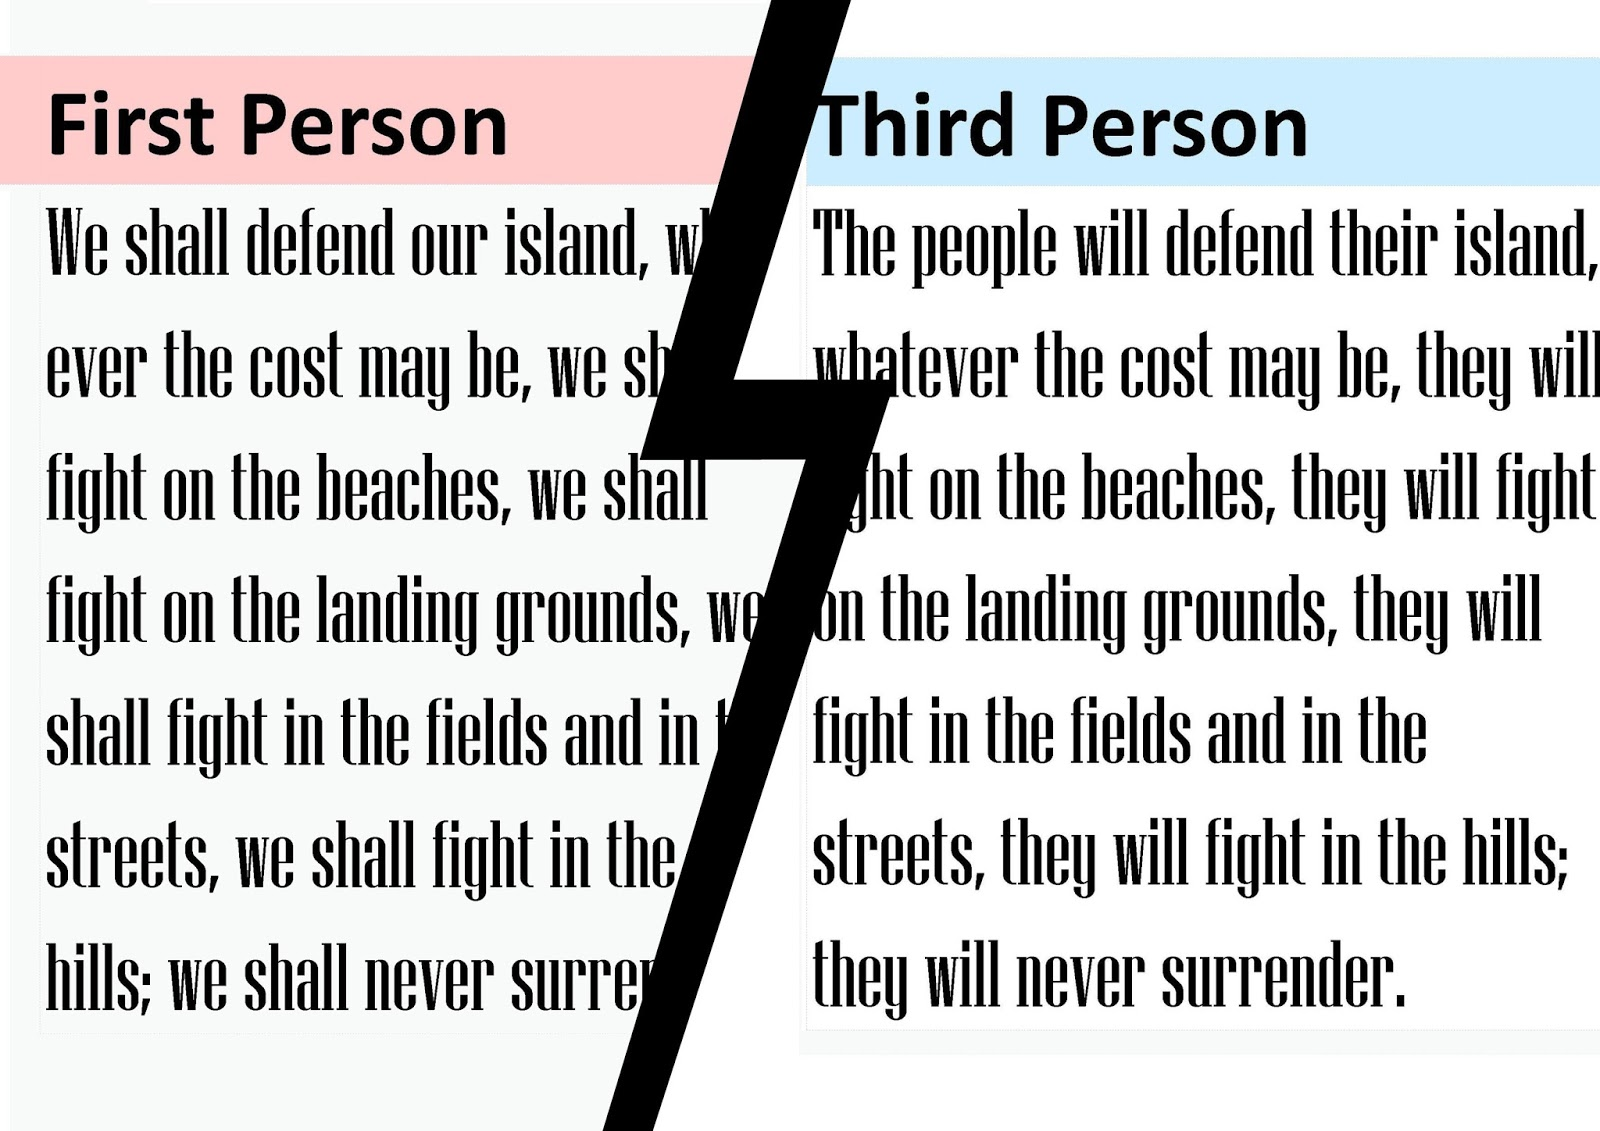 Writing in fist person third person